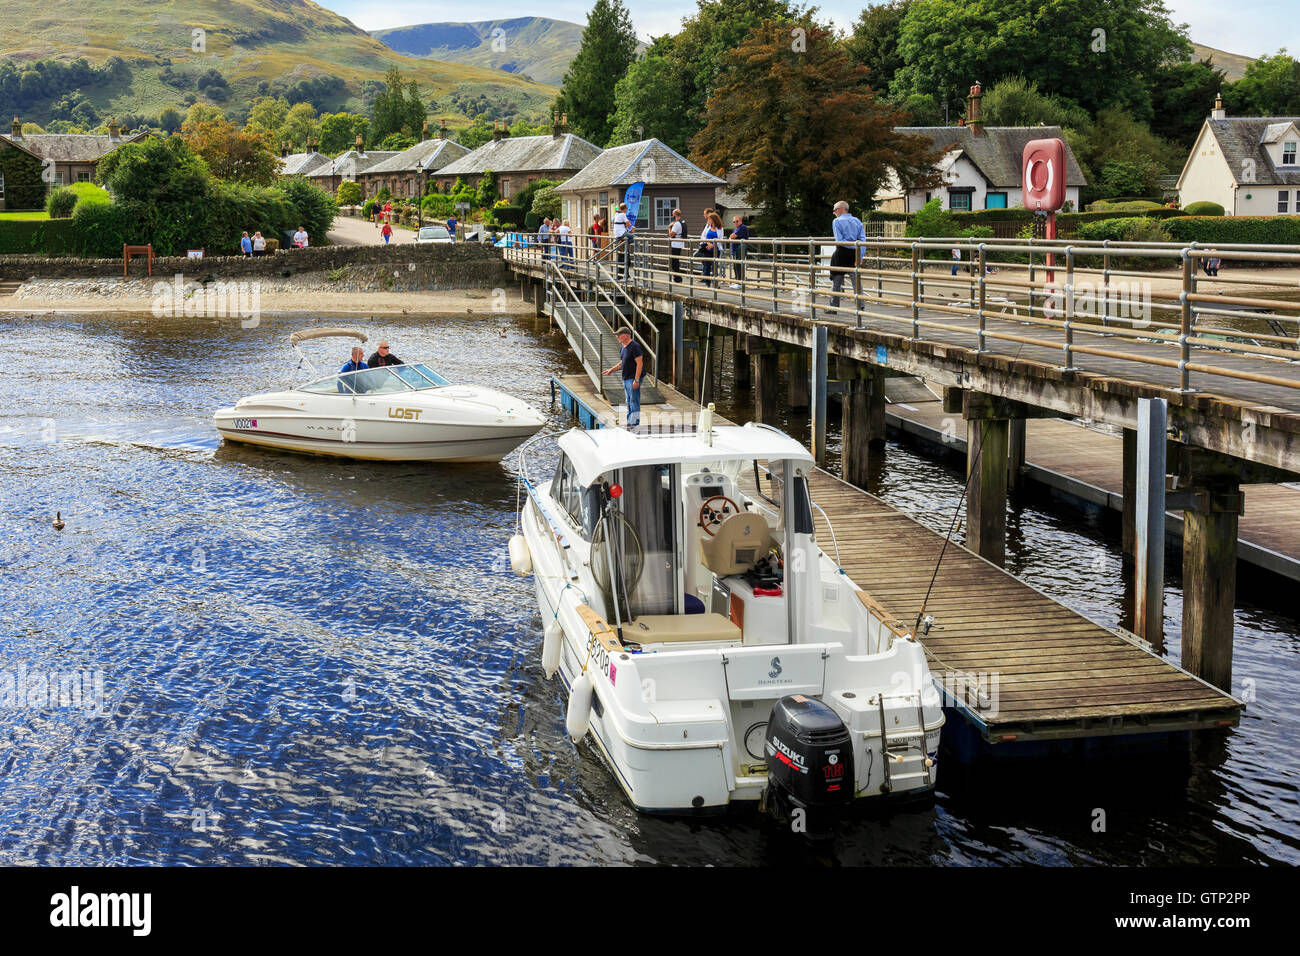 Pier at Luss, Loch Lomond, with two motor boats and tourists, Scotland, UK - Stock Image